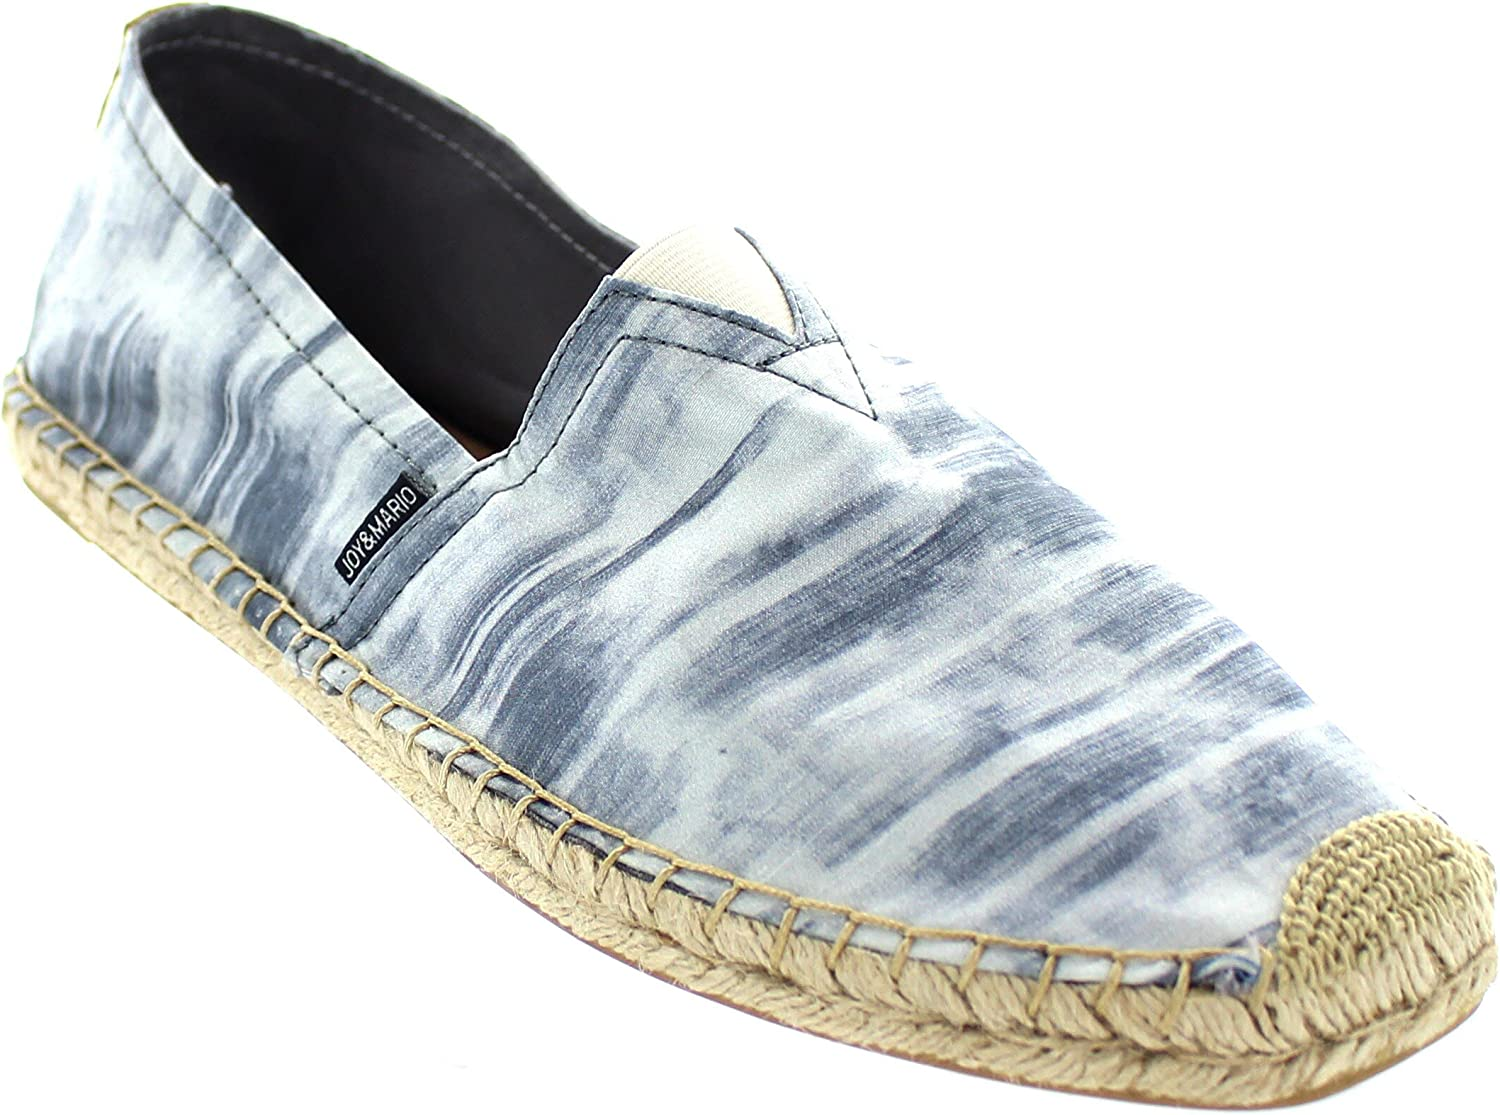 Joy and Mario Mens 19 Variations Bundle Casual Comfort Canvas Hemp Leather Slip-On Loafers Espadrille Flats Shoes